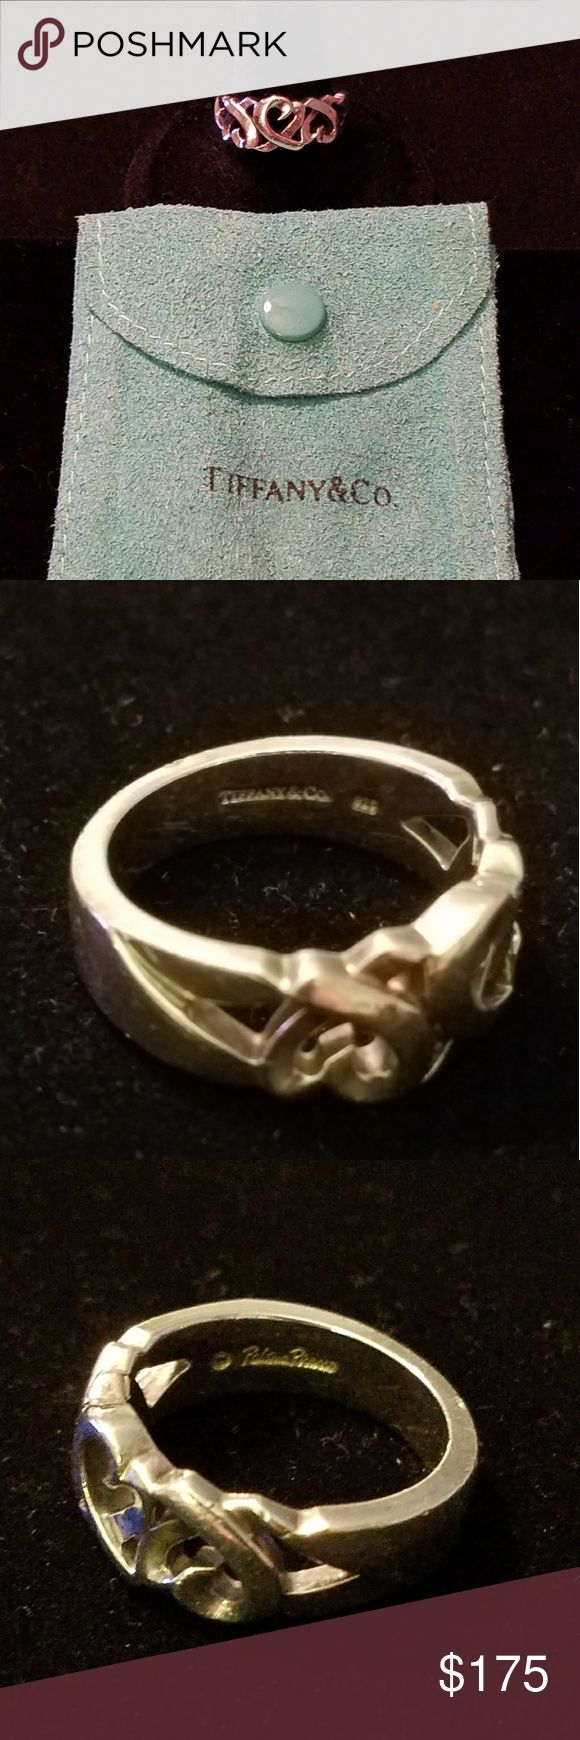 Tiffany & Co. Paloma Picasso Loving Heart Ring Authentic Tiffany & Co.  sterling silver 925 Paloma Picasso heart ring in size 8. This item has been retired since the original purchase in 2008 at the Tiffany store at South Coast Plaza. It was worn on a regular basis at one point and does have some flaws as seen in the pictures. Tiffany & Co. Jewelry Rings